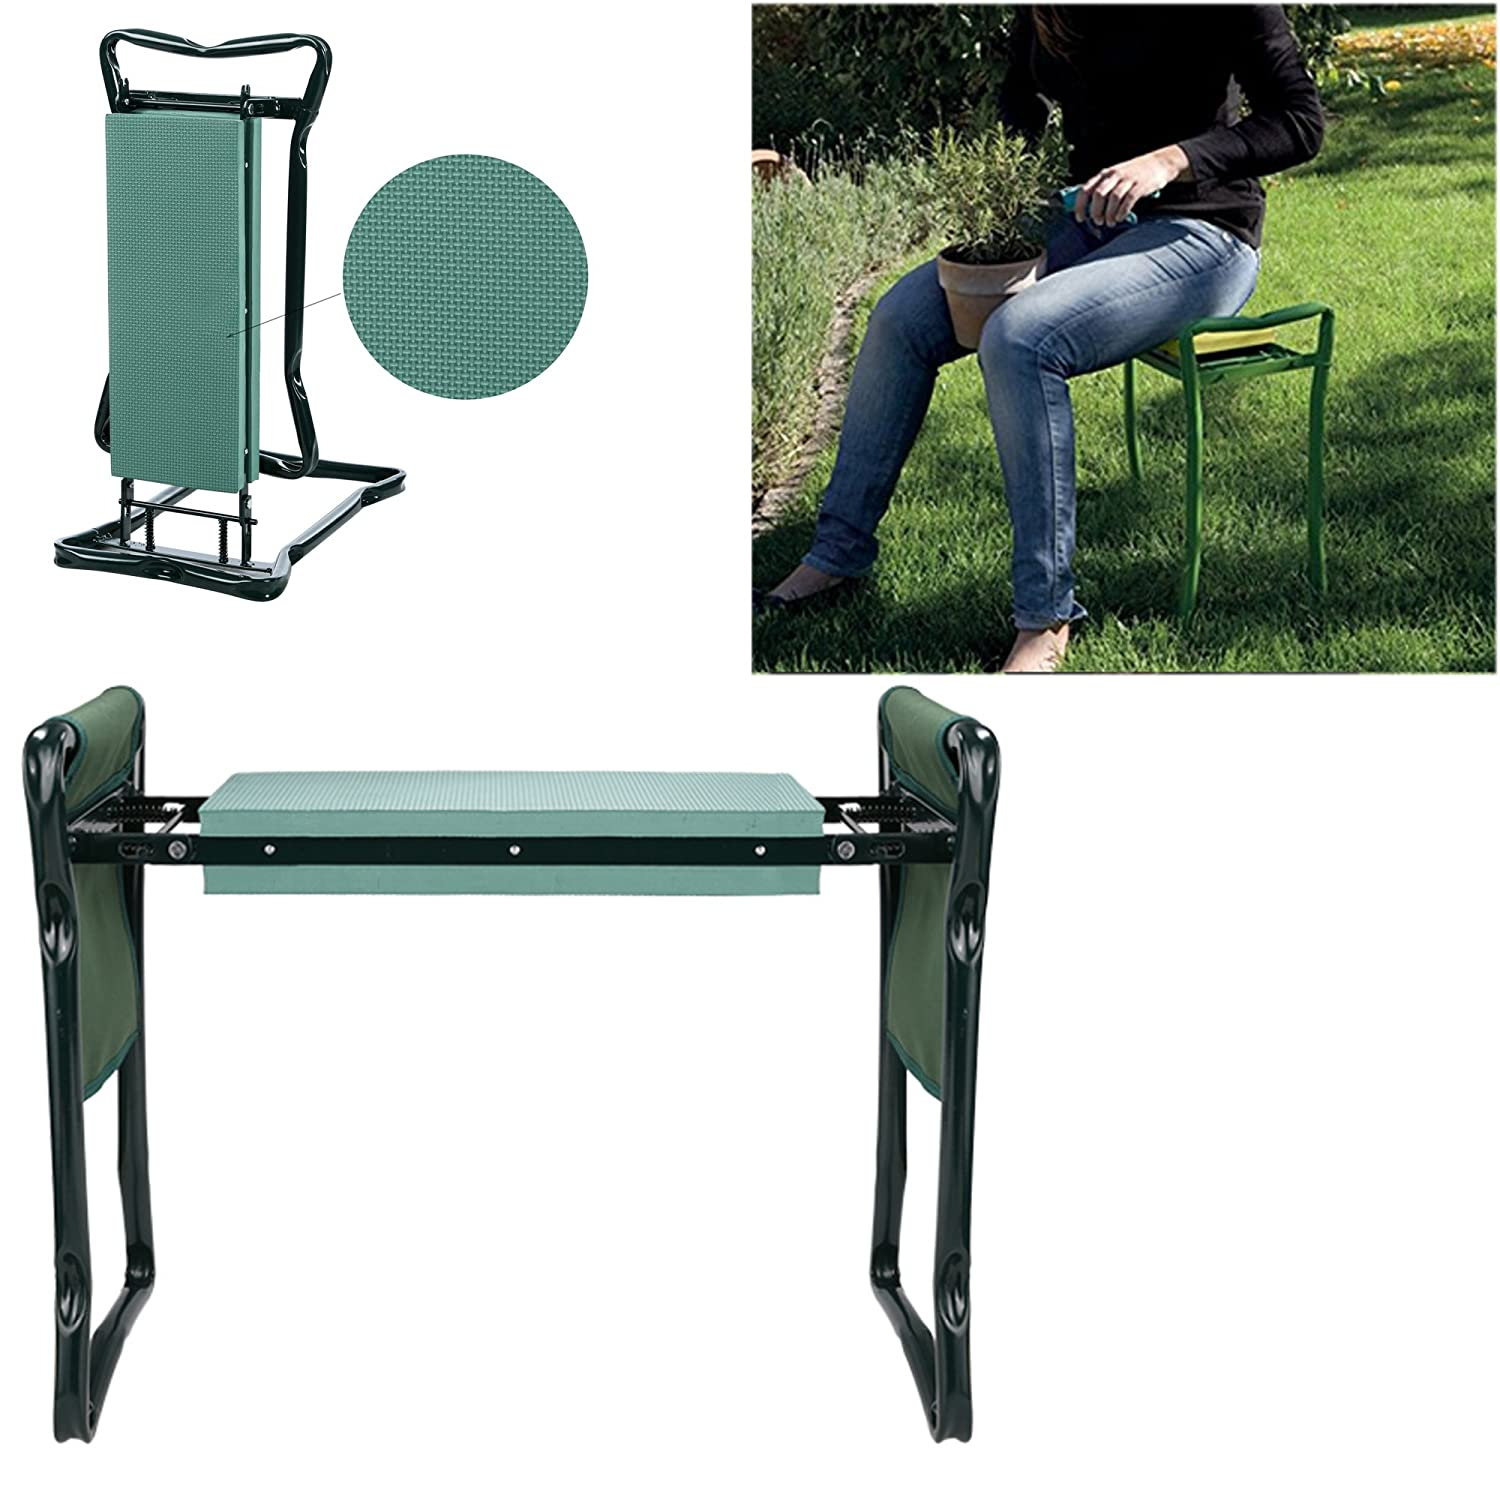 Wakrays Foldable Kneeler Garden Seat Portable Stool with EVA Kneeling Pad and Tool Pouch Green